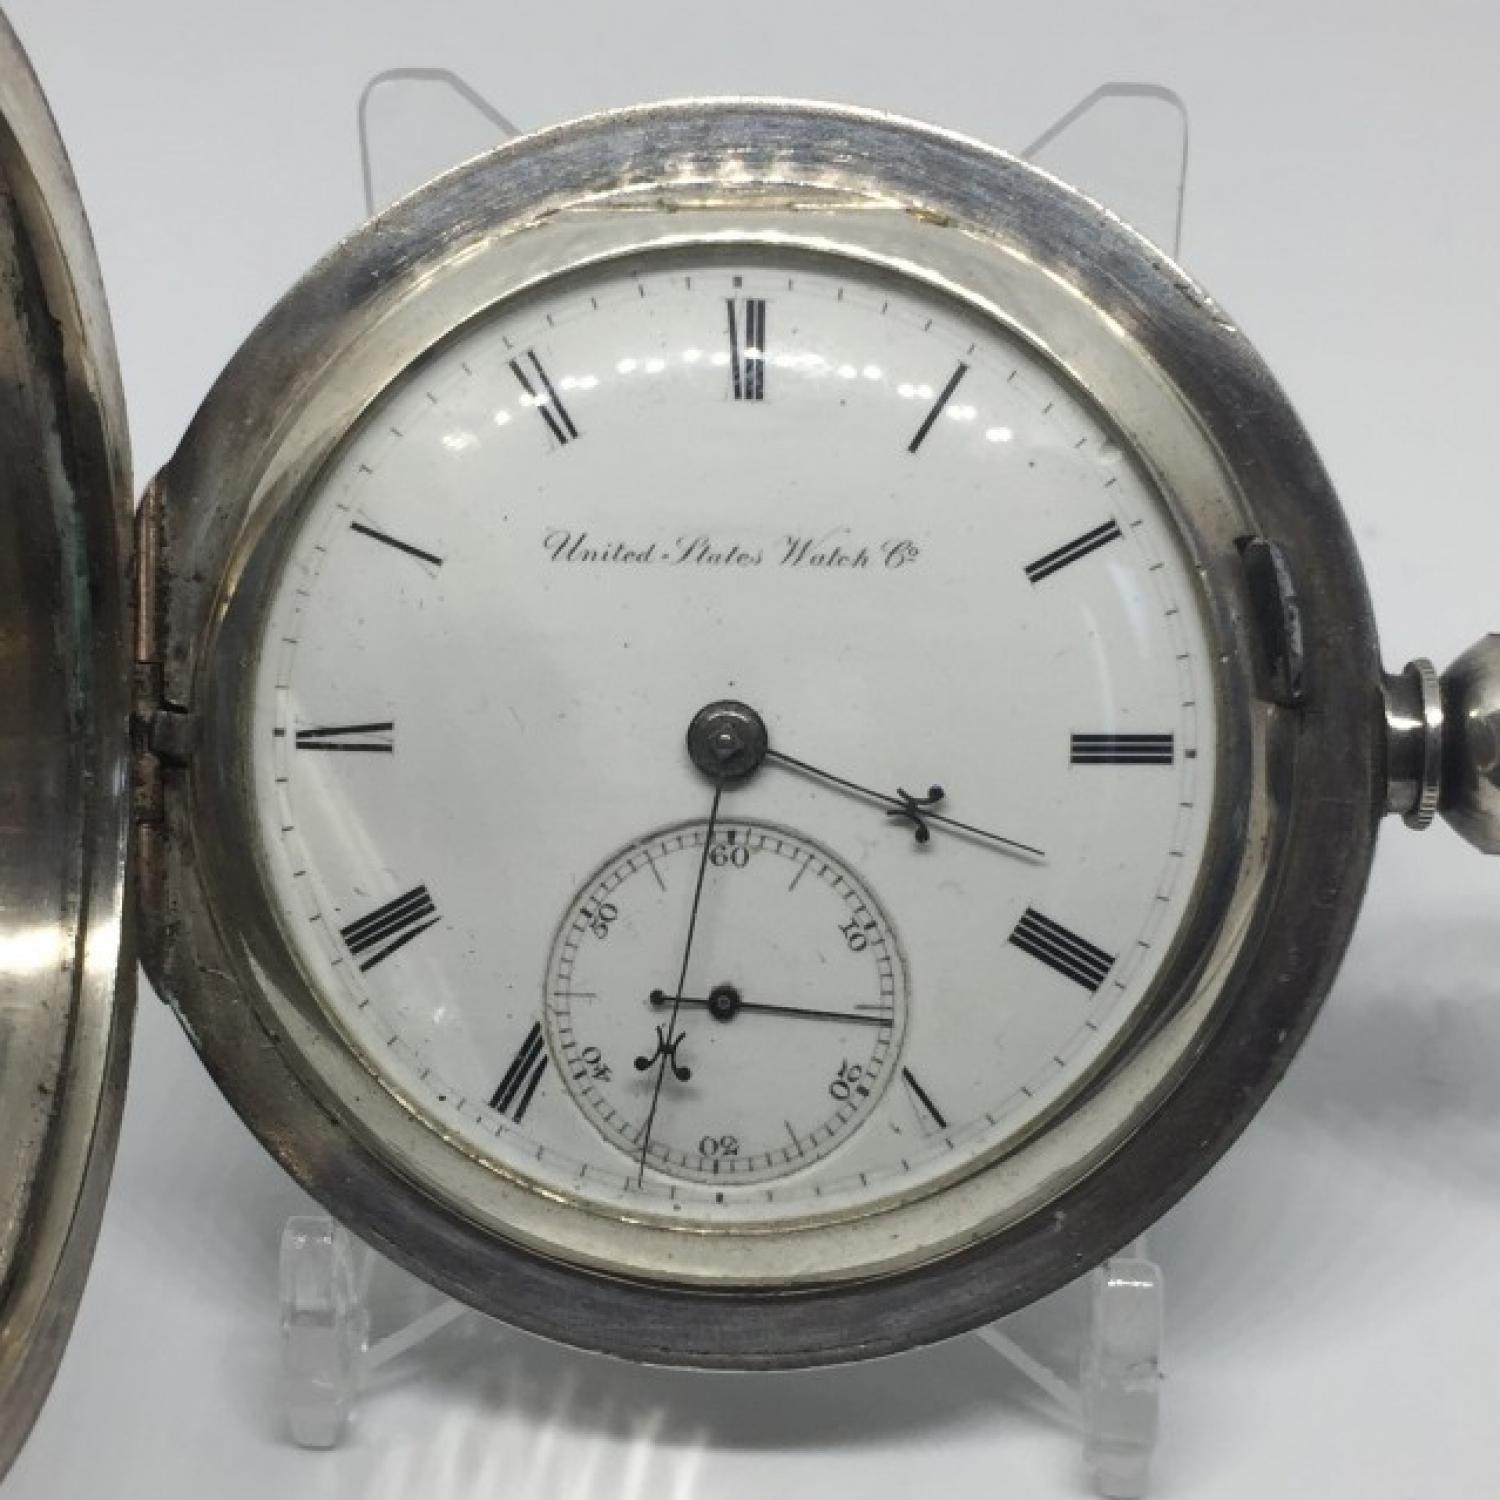 Image of U.S. Watch Co. (Marion, NJ) George Channing #14774 Dial